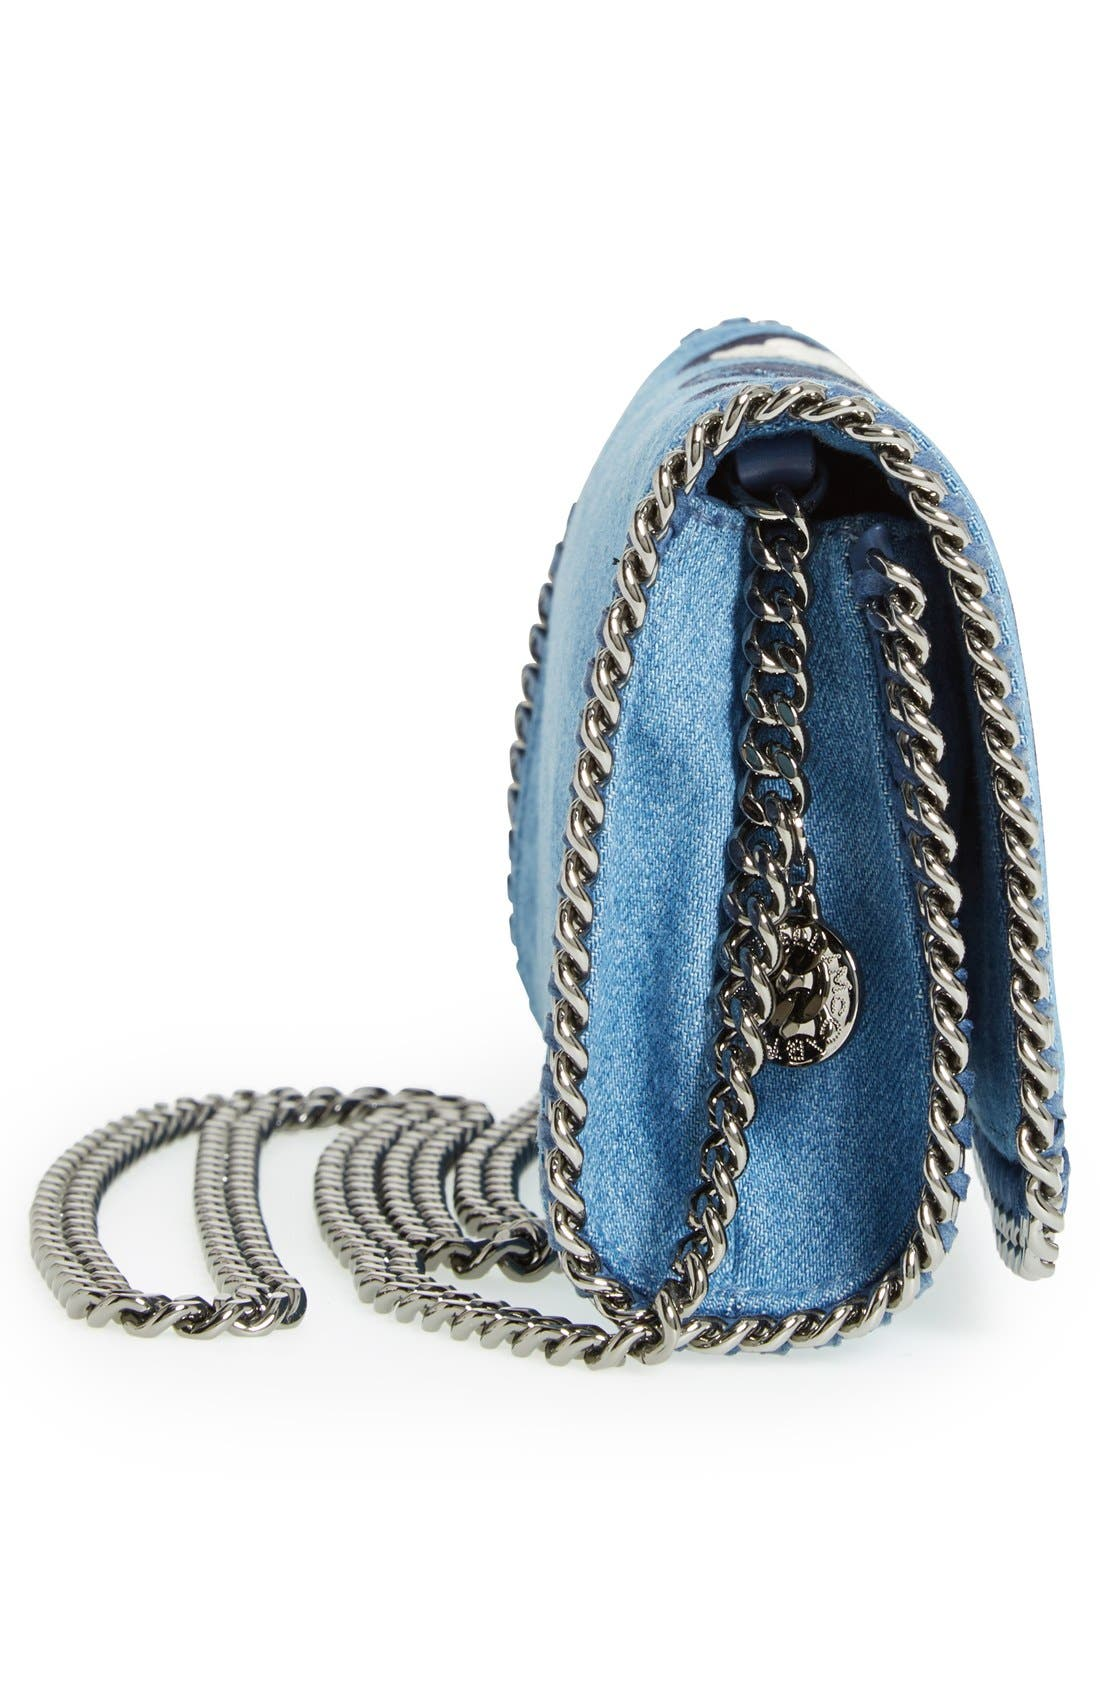 'Falabella - Adorned' Denim Crossbody Bag,                             Alternate thumbnail 5, color,                             Blue